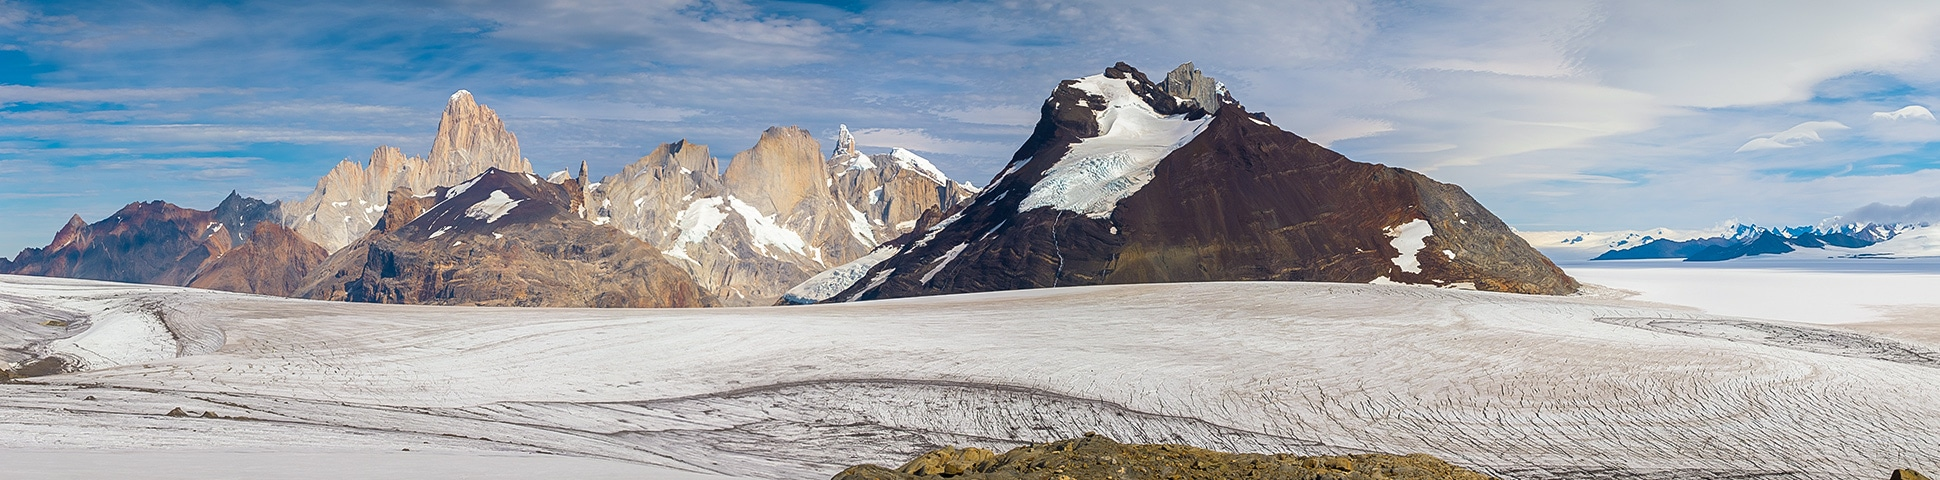 Panoramic view of Southern Patagonia Icefield Expedition